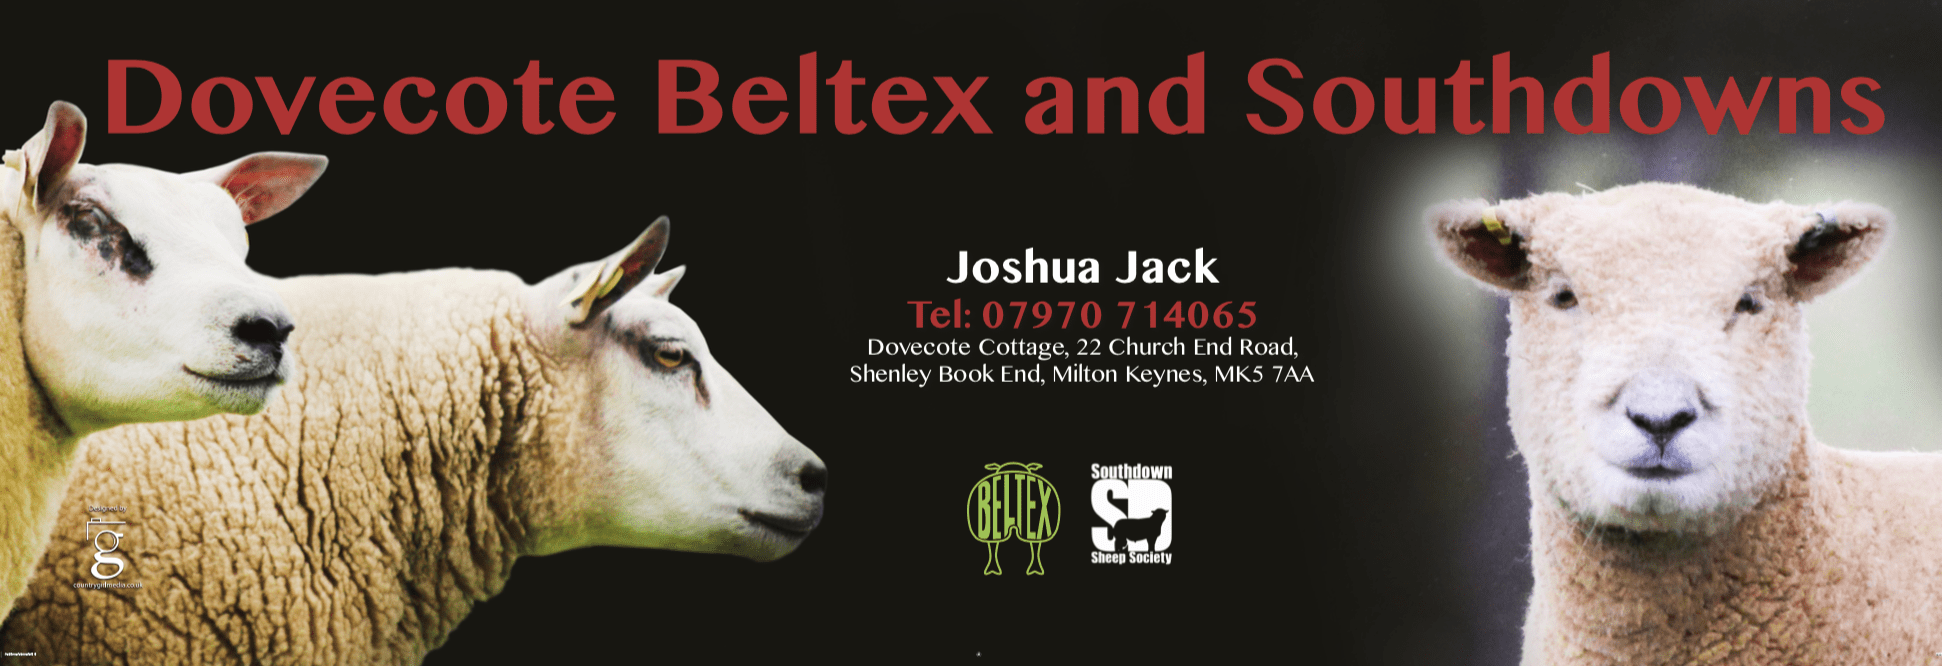 Photography and banner design for Dovecote Beltex and Southdowns